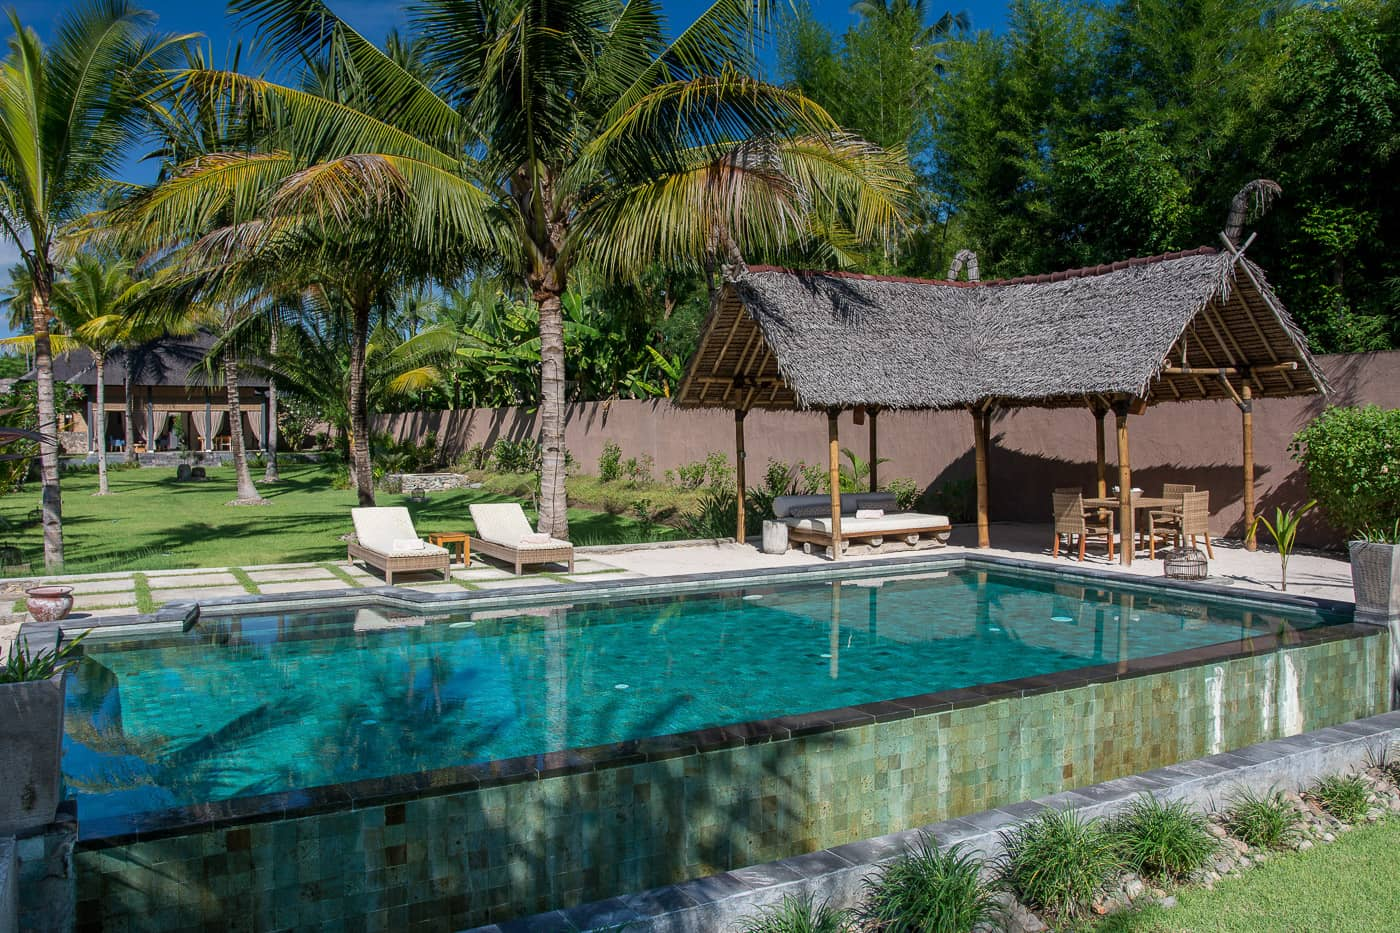 exterior pool and garden image of The Beach Villa Lombok